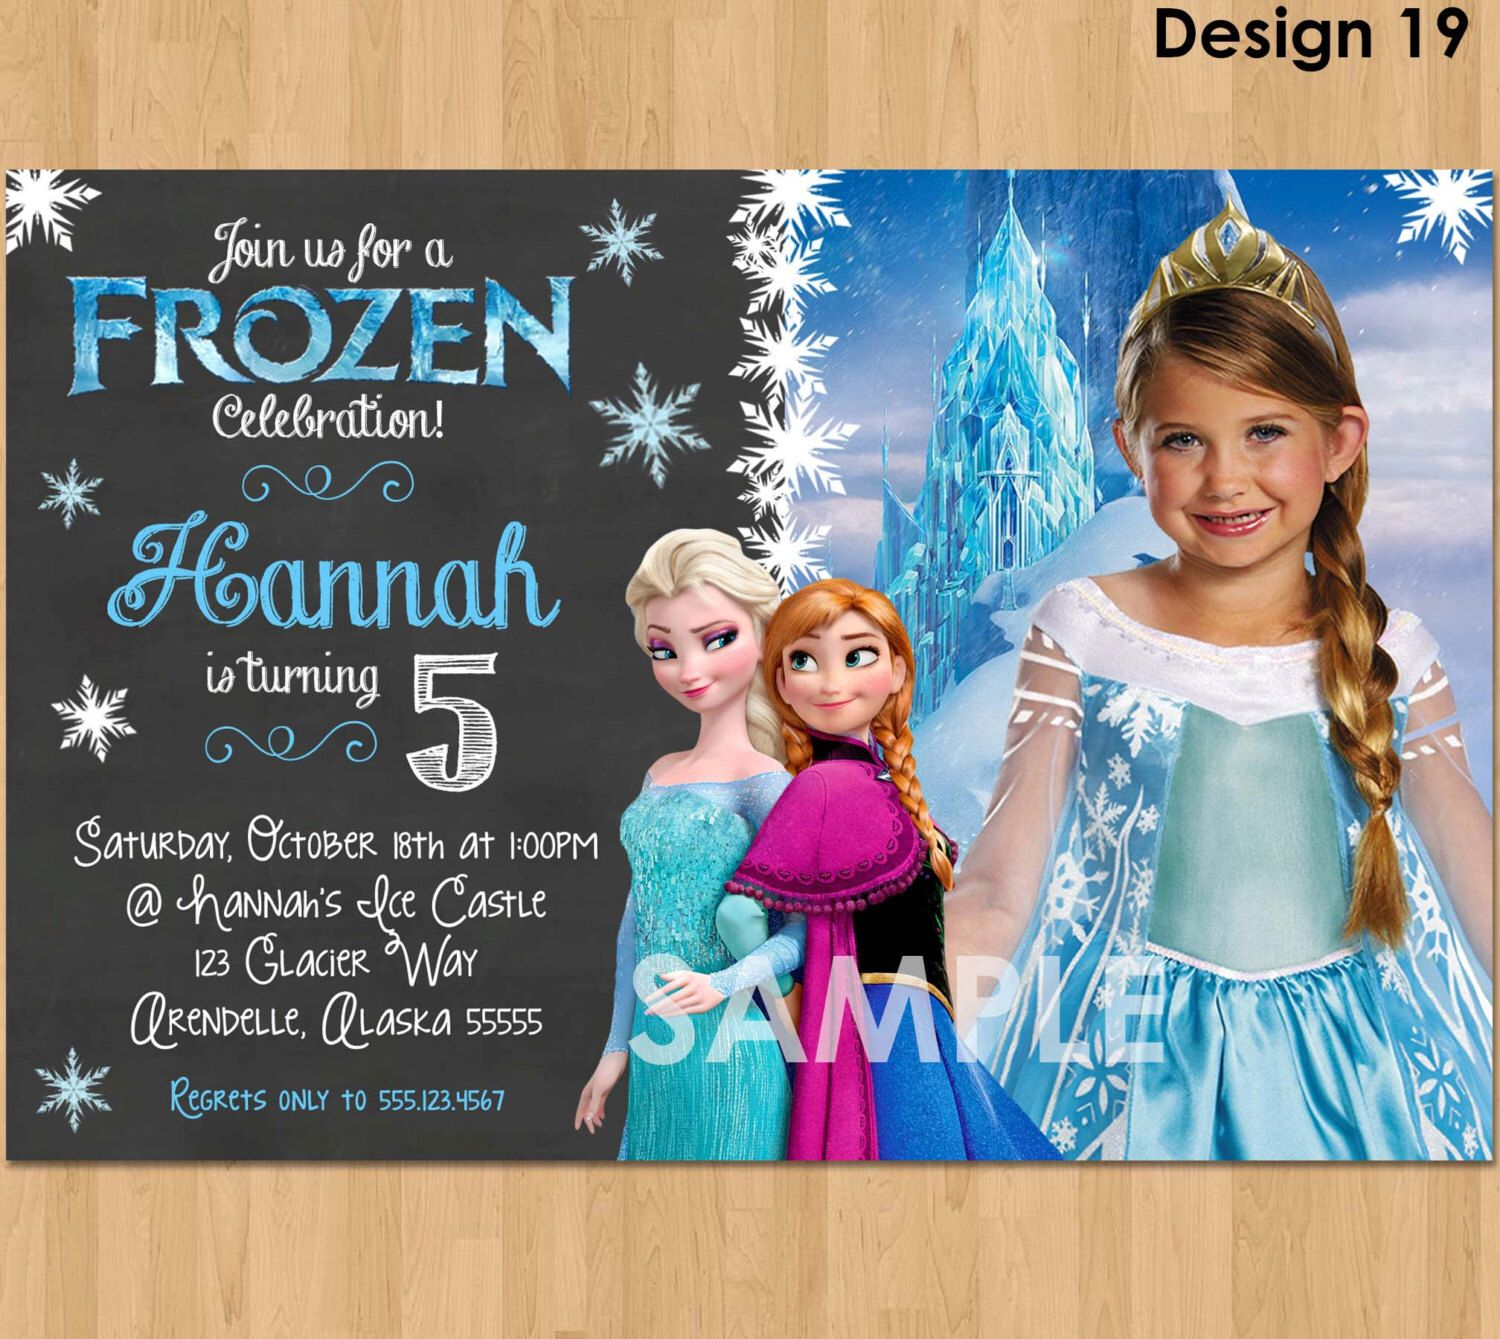 Pin By Charlene Moberly On Frozen Birthday Party